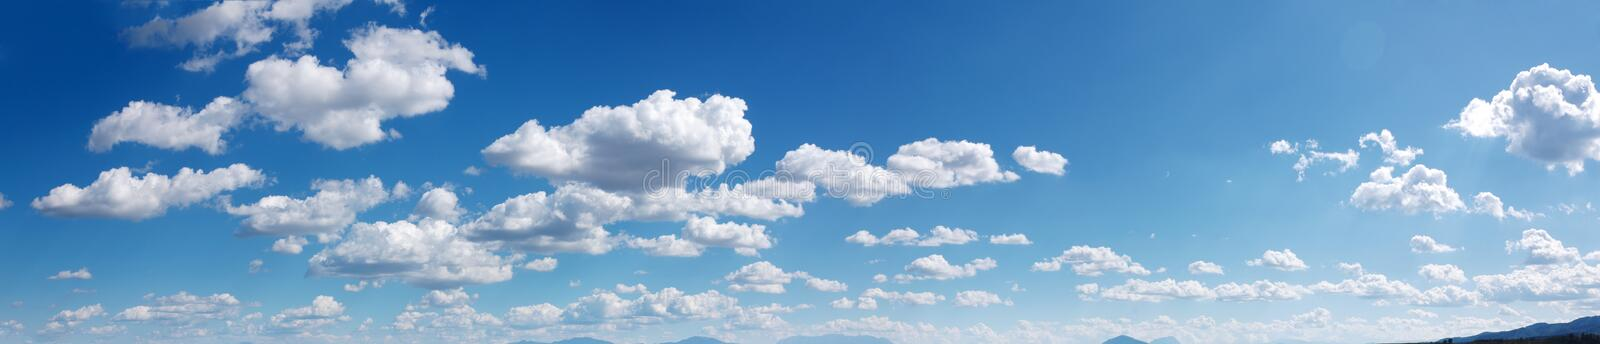 Sky panorama stock image